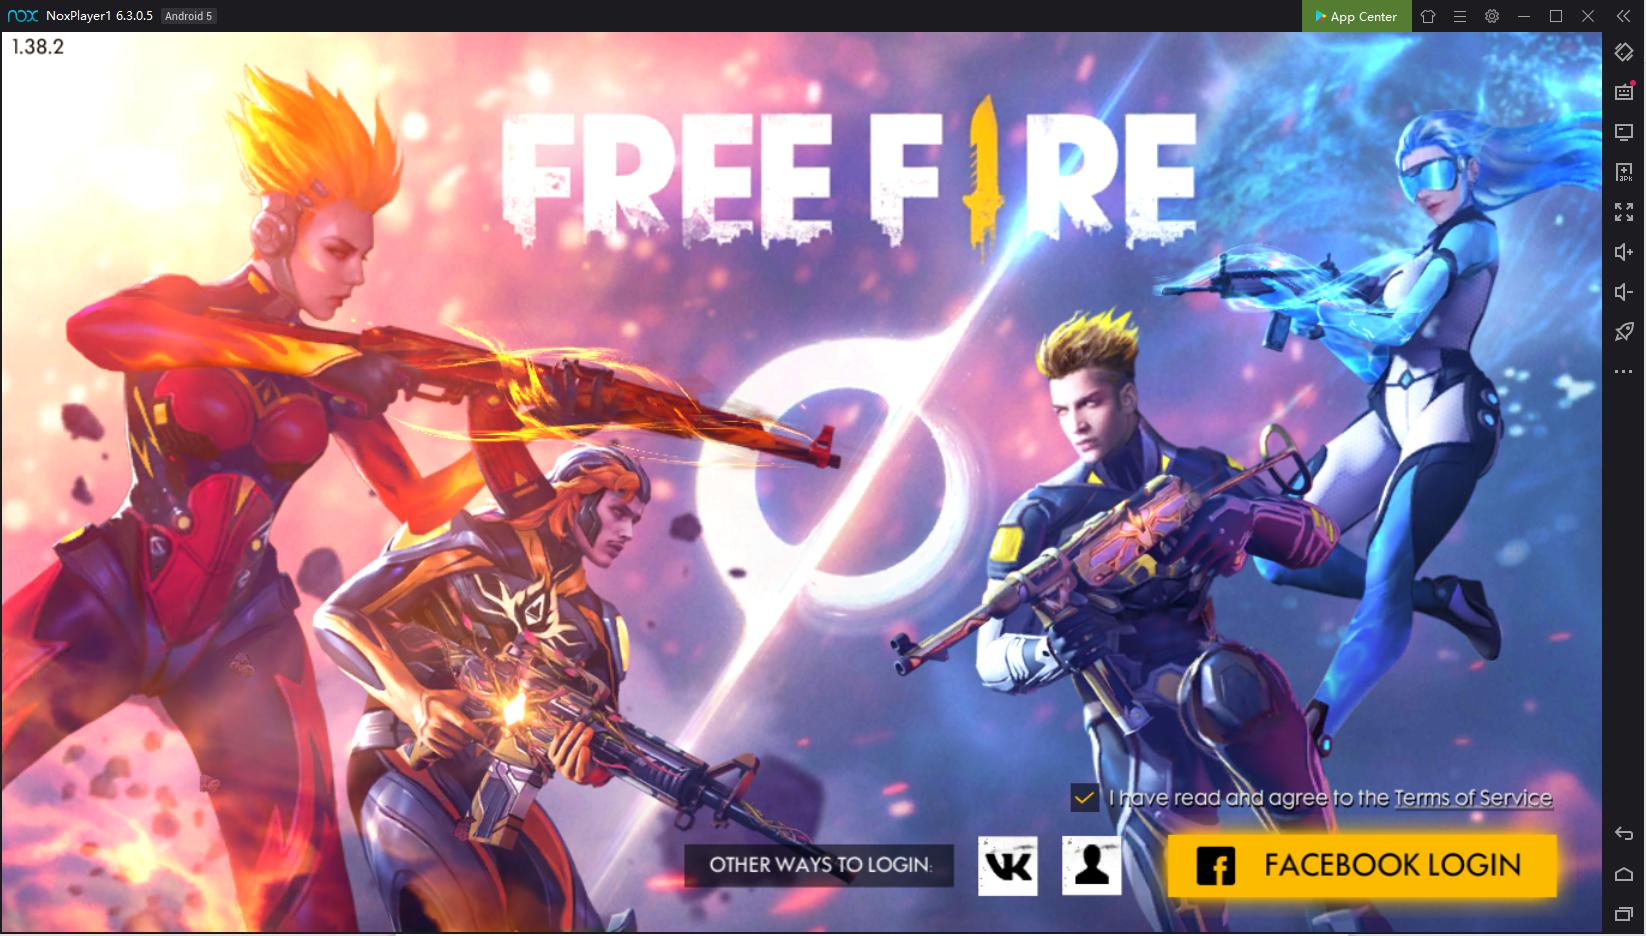 Using Keyboard Control To Play Free Fire On Pc With